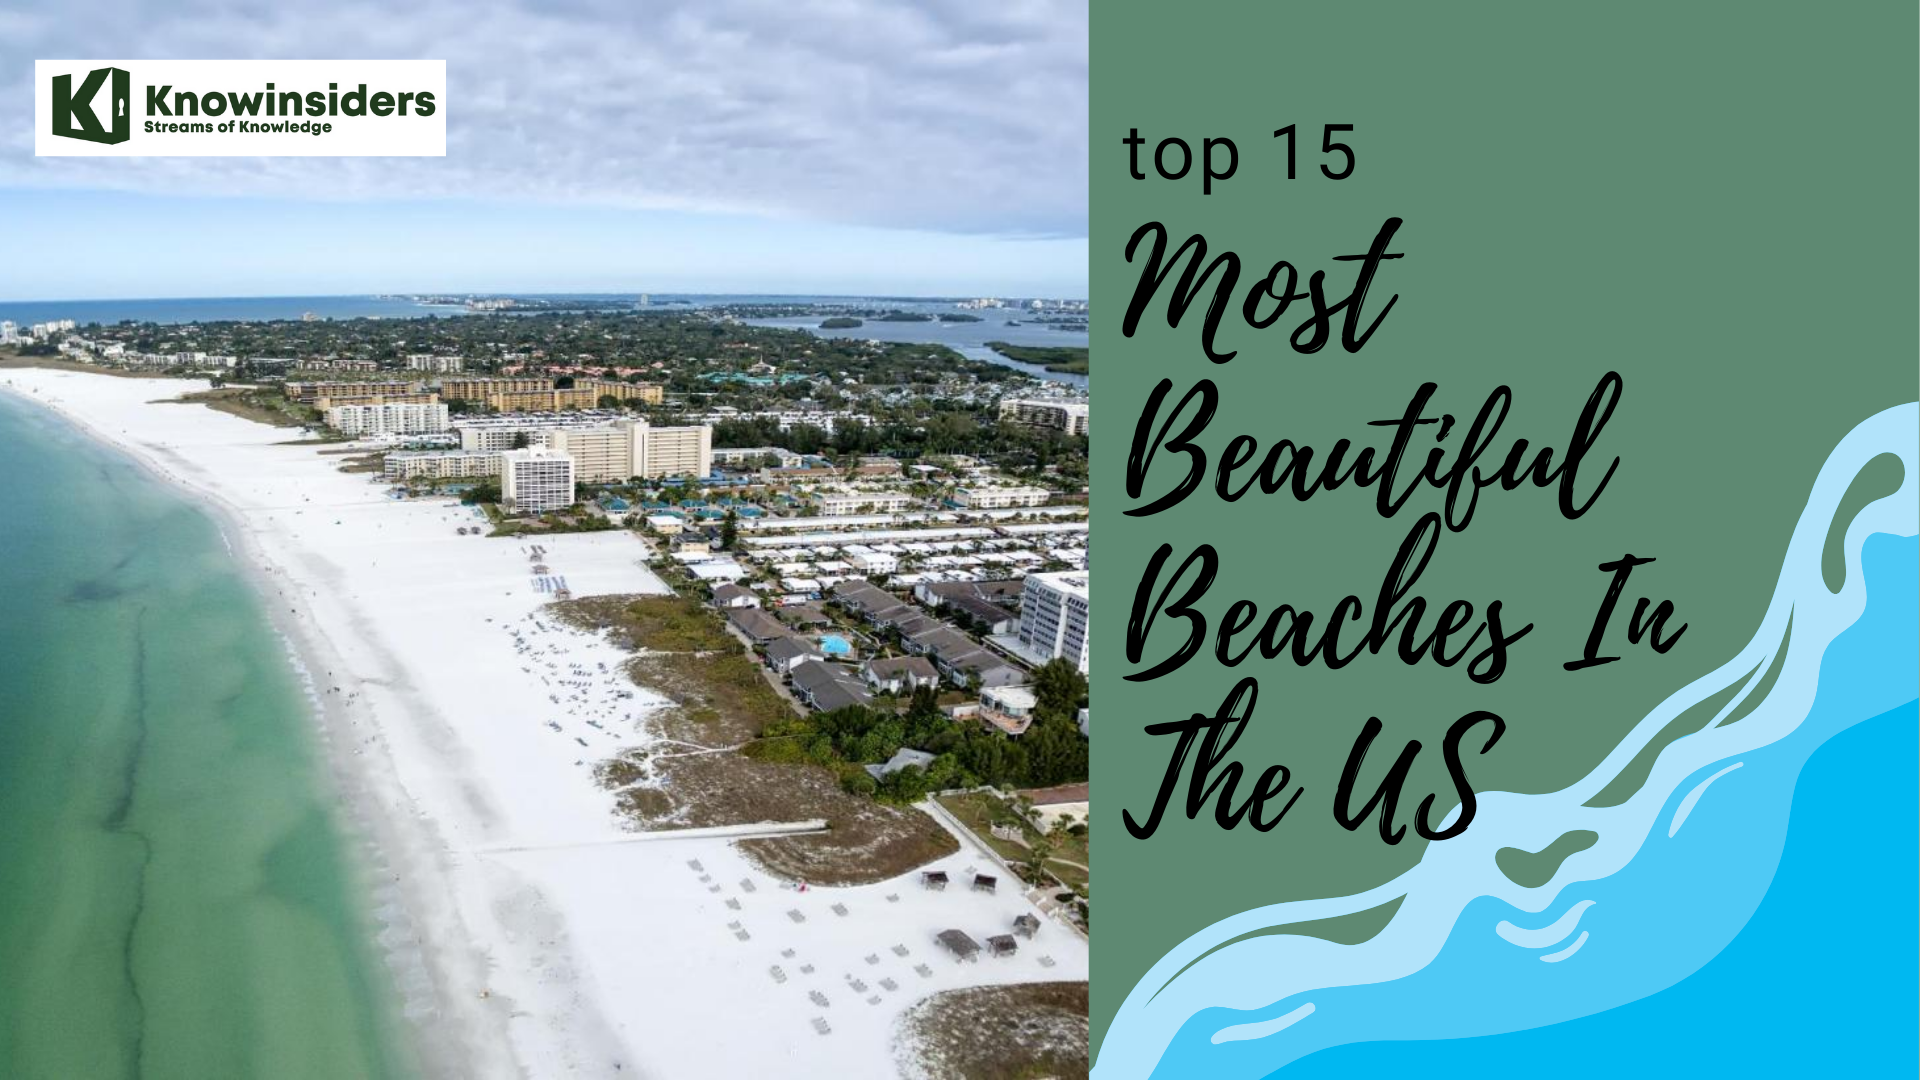 Top 15 most beautiful beaches in the US